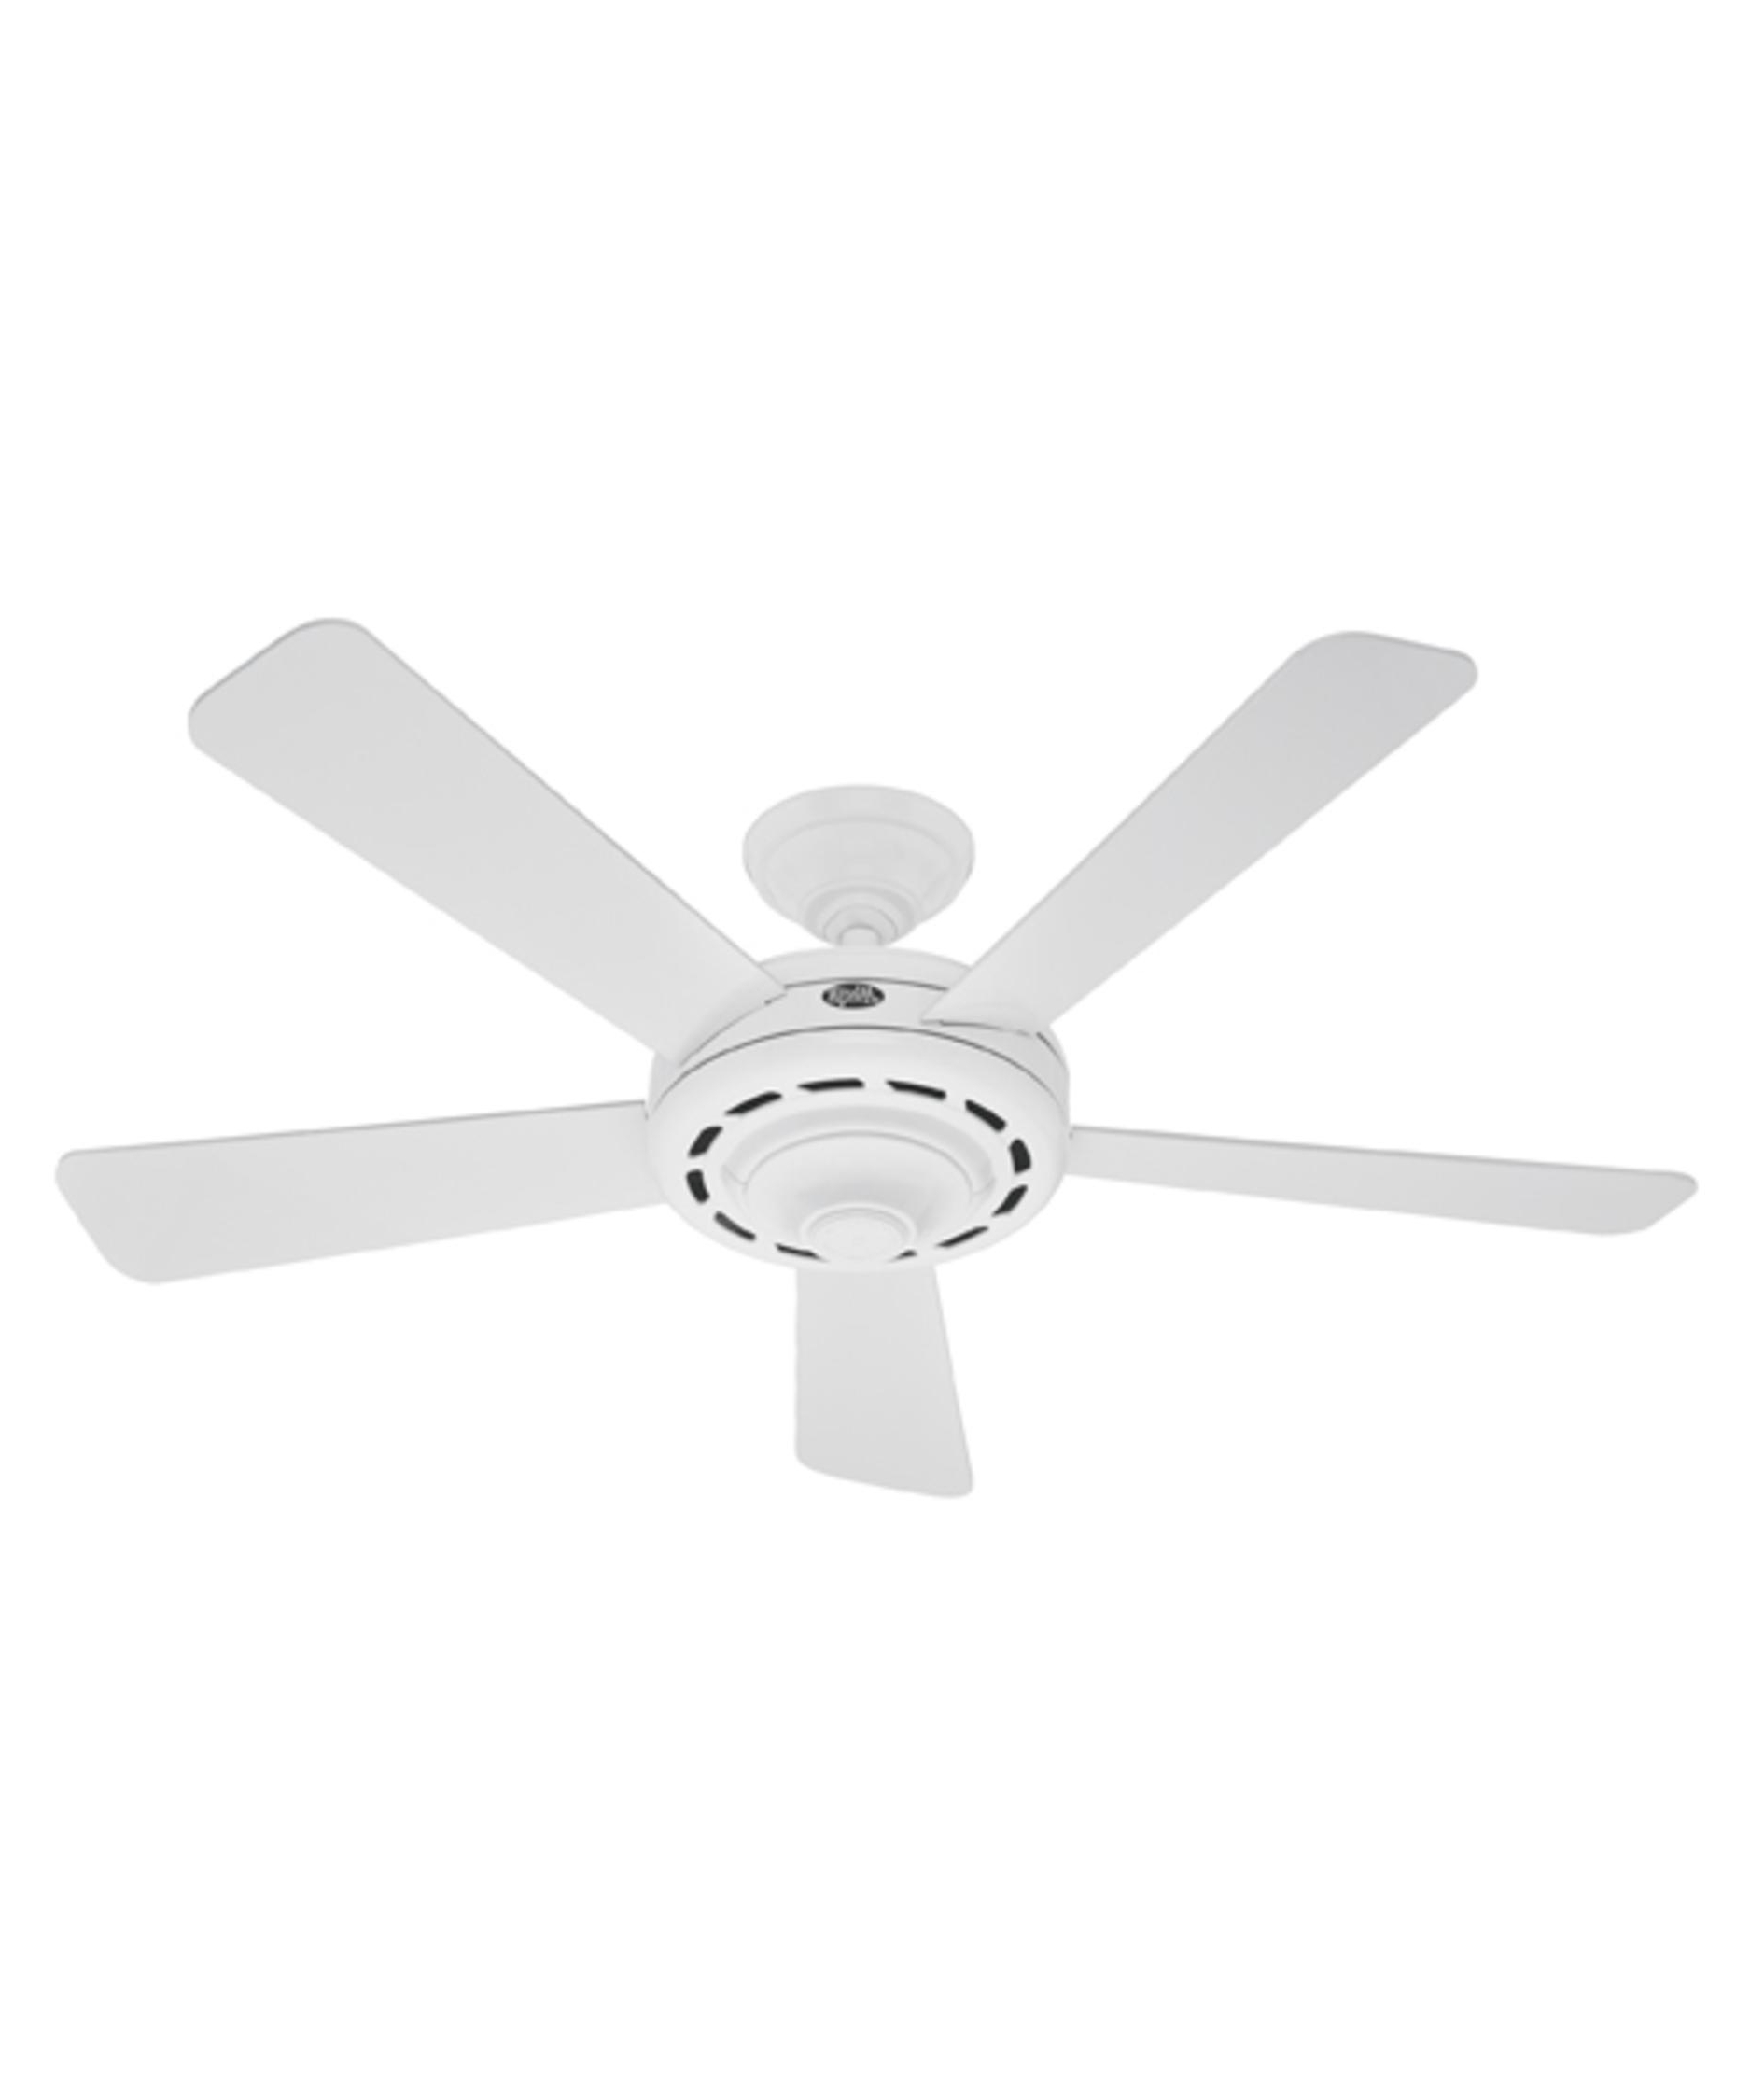 Energy Star Outdoor Ceiling Fans With Light Regarding Popular Hunter Fan 25866 Dimensions 52 Inch 5 Blade Ceiling Fan (View 7 of 20)